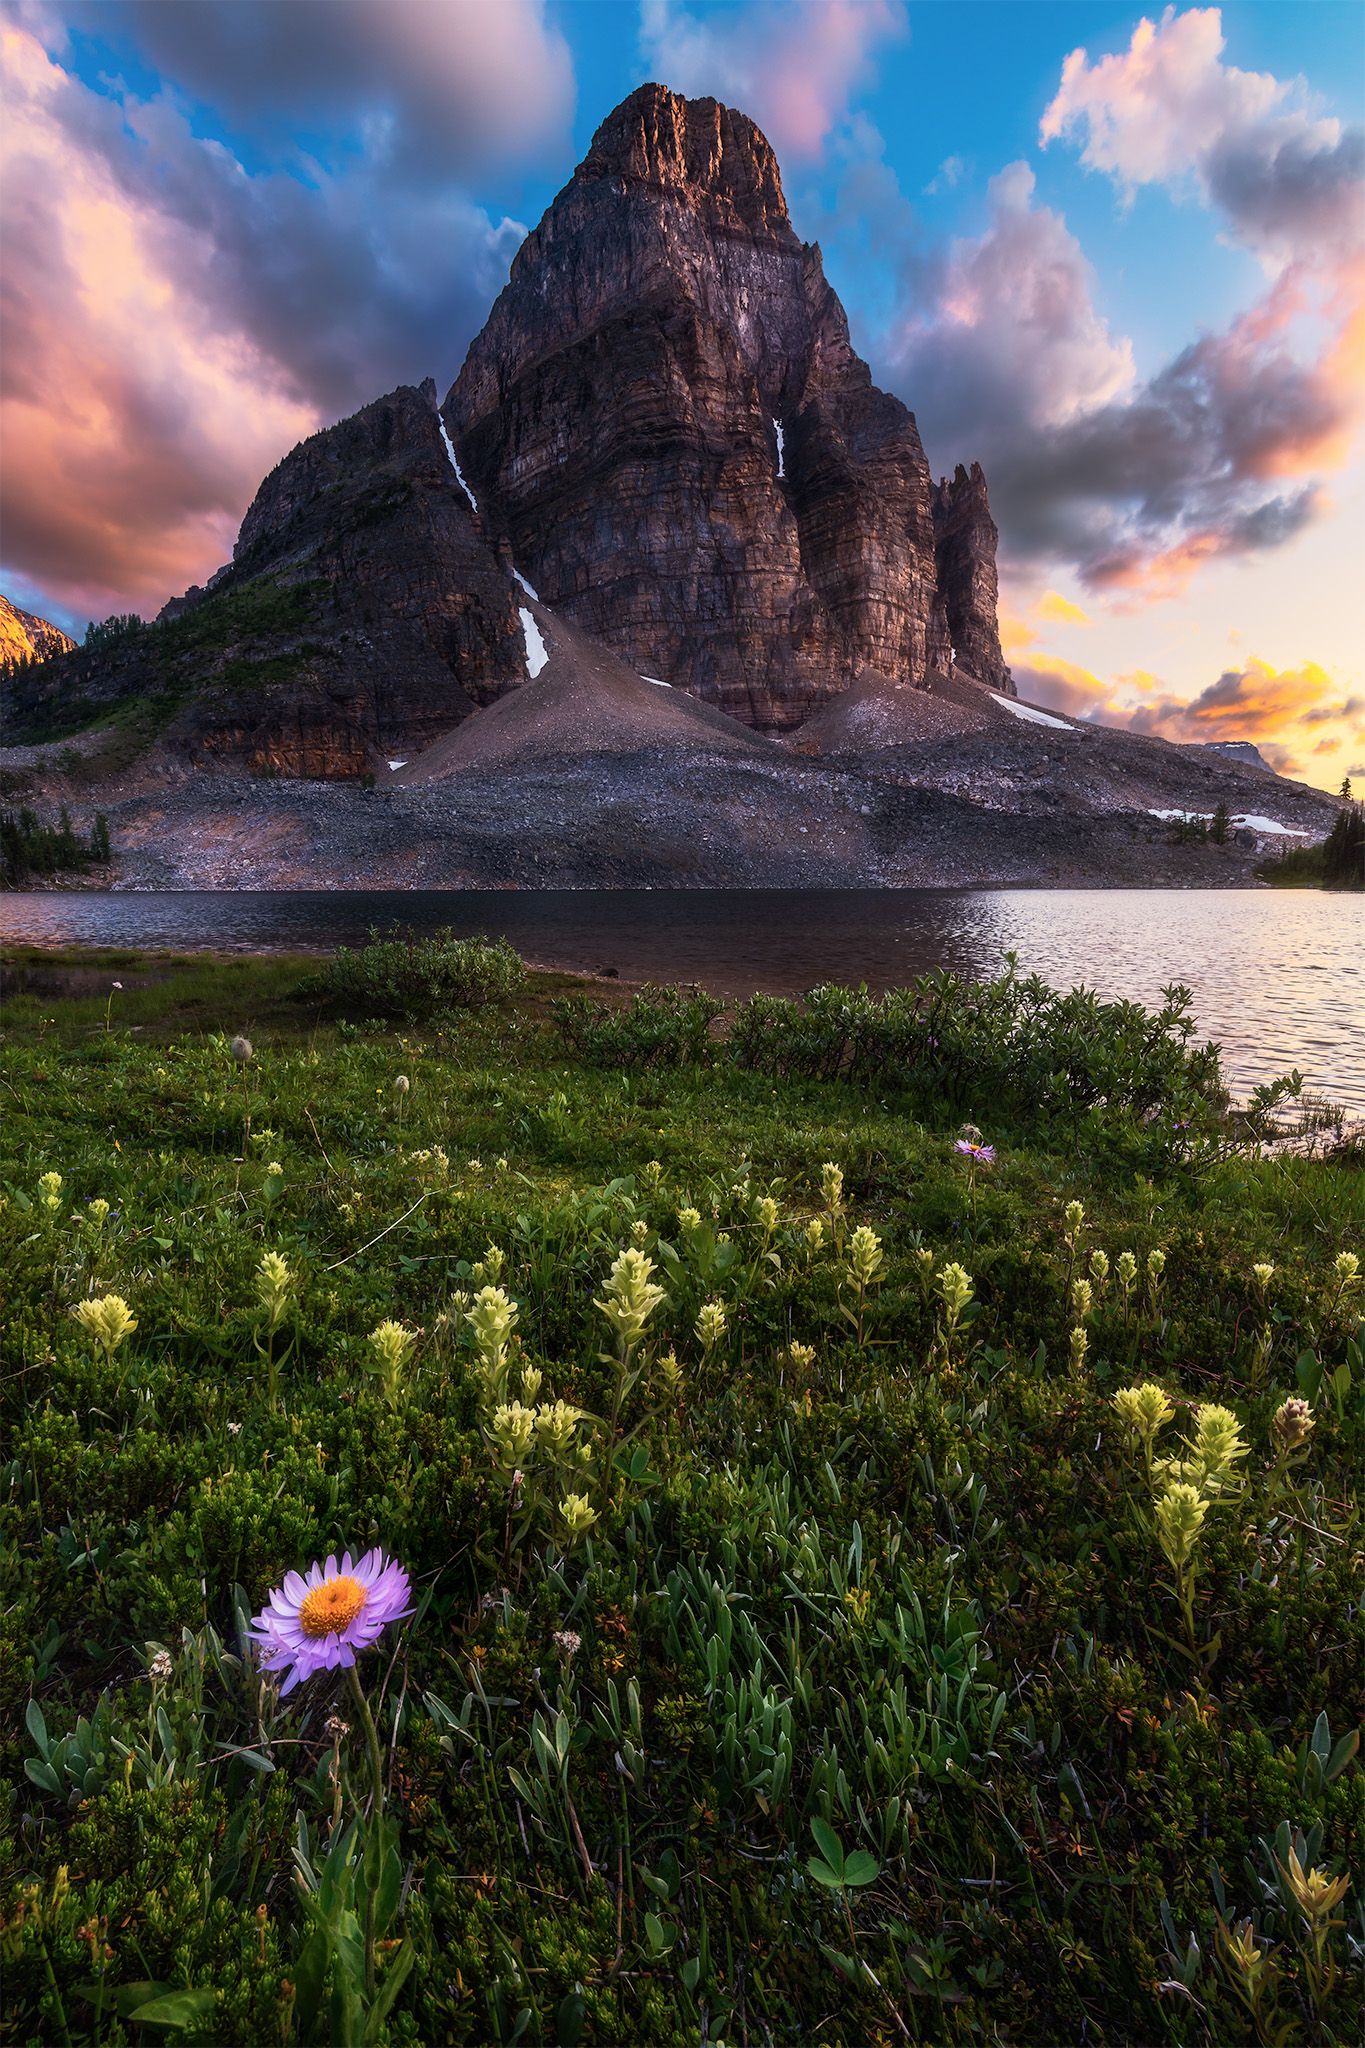 Landscape Photography of Sunburst Peak in Mt. Assiniboine Provincial Park in the Canadian Rockies, British Columbia